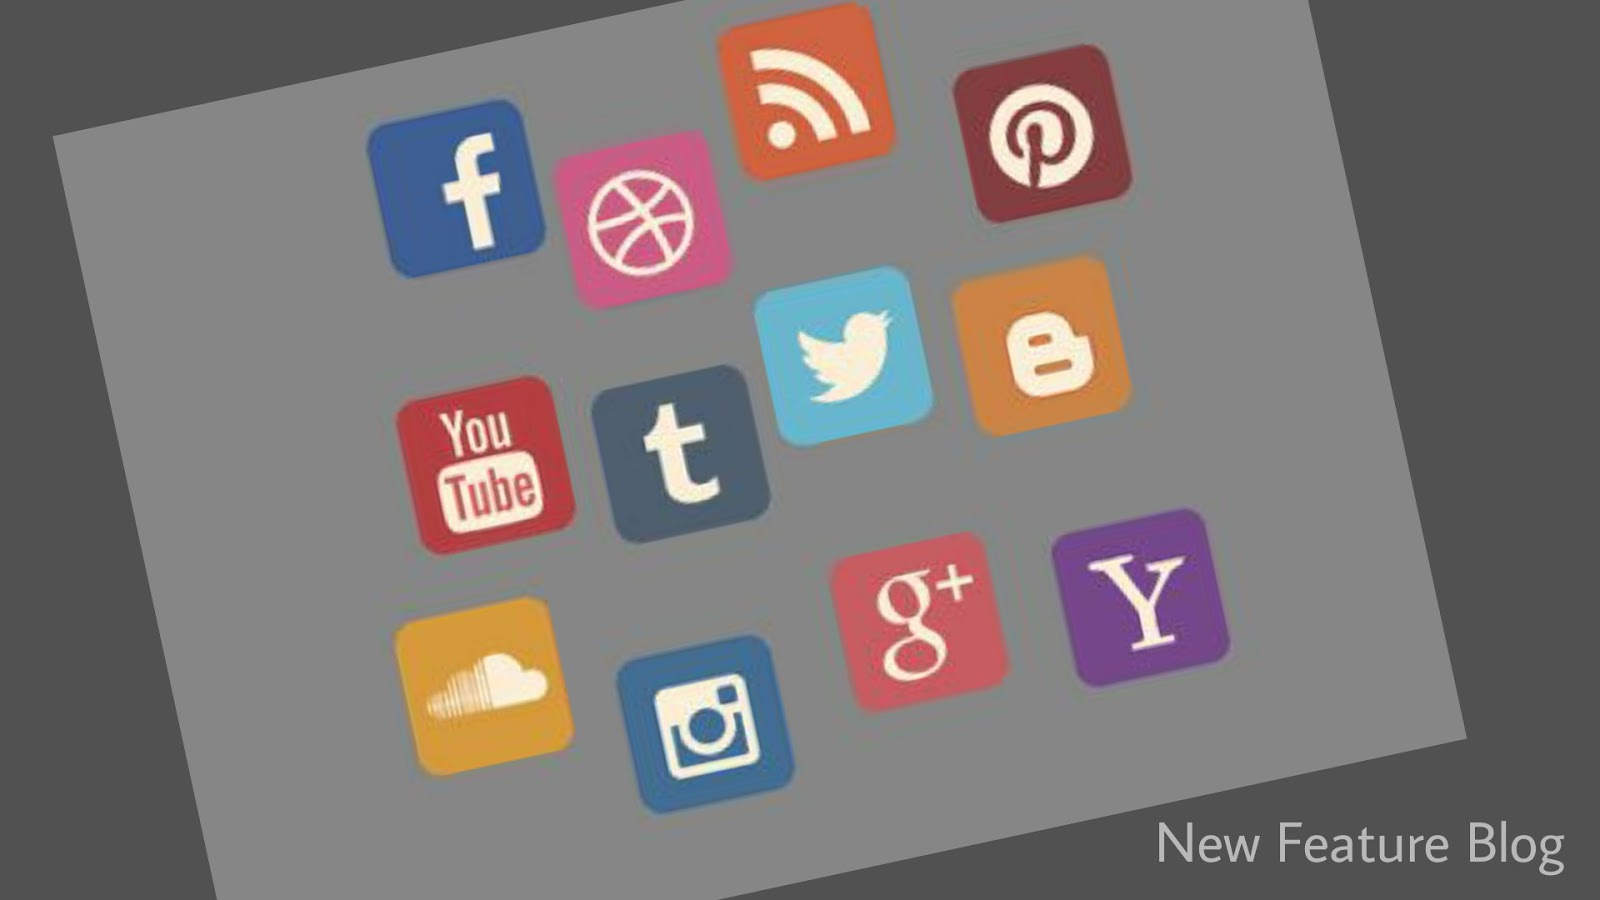 Simple-and-fast-loading-social-media-counter-widget-for-blog